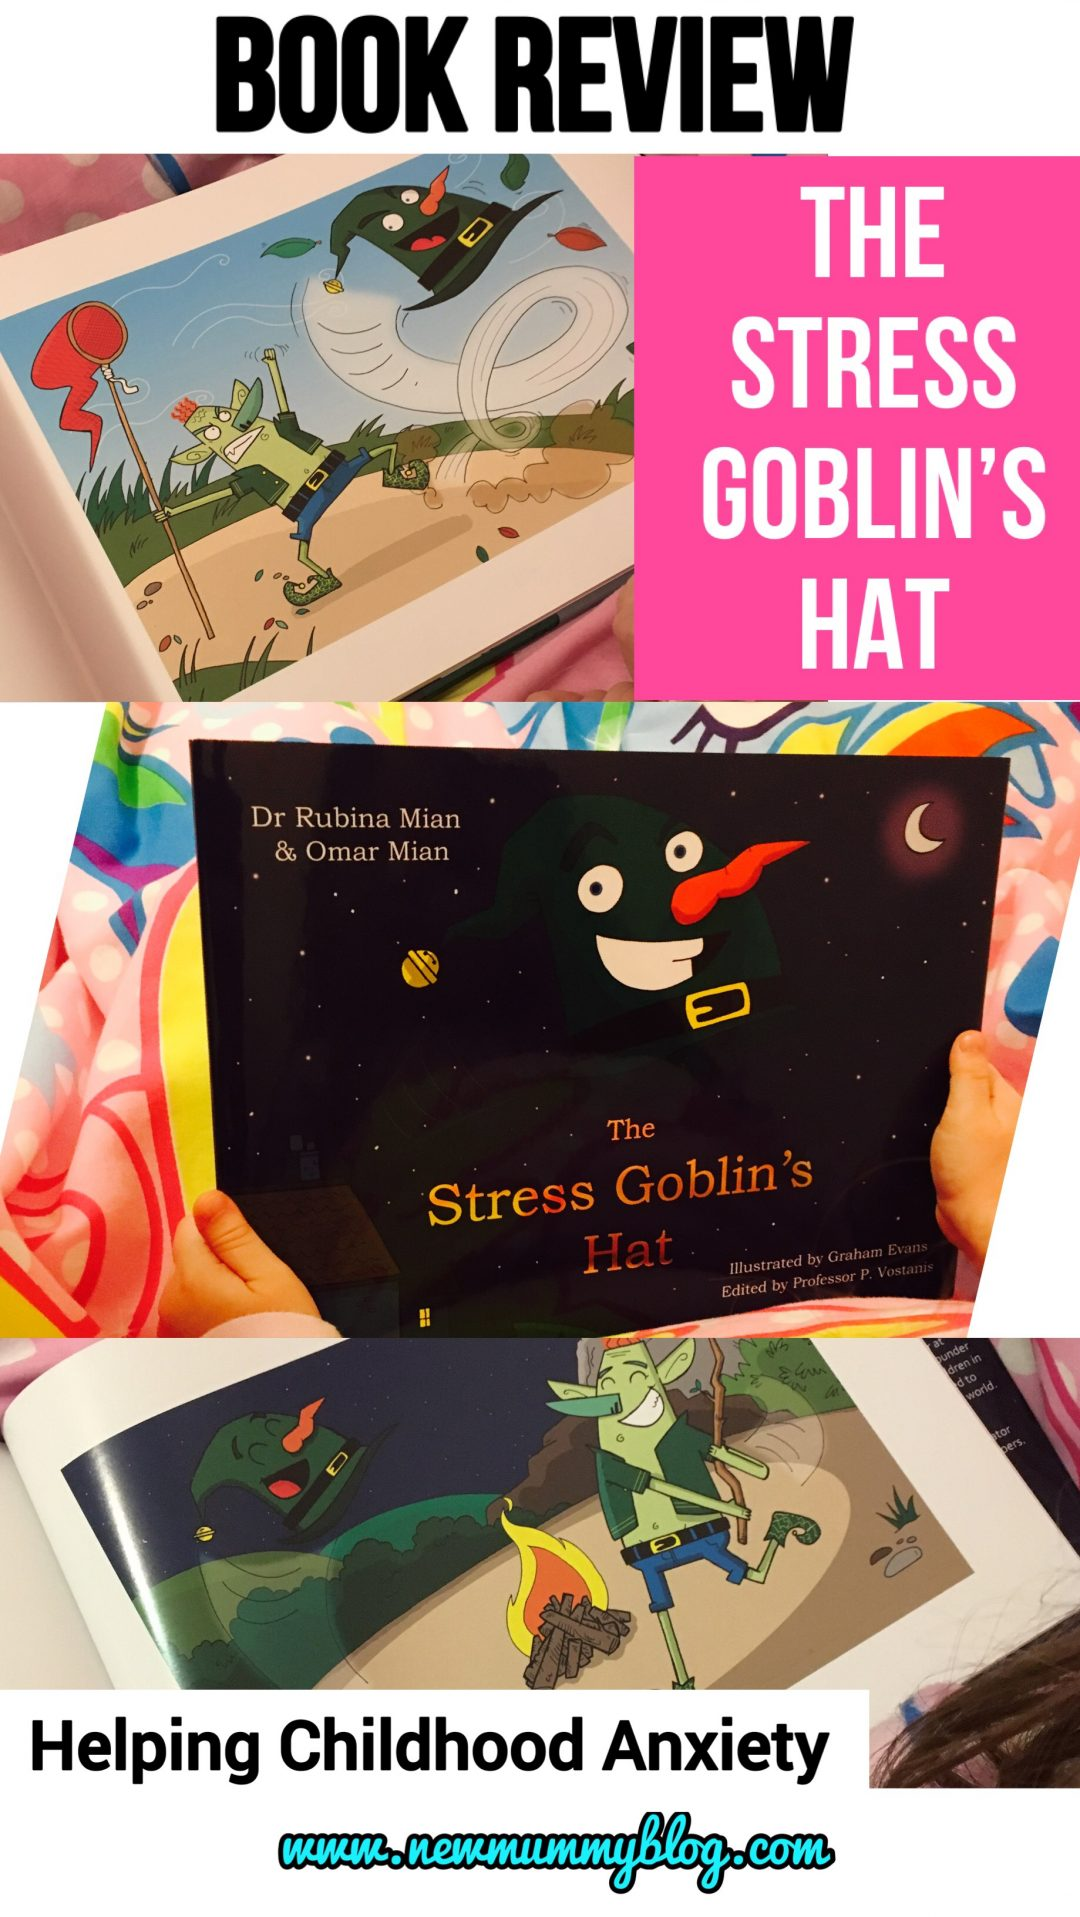 The Stress Goblin's hat book review - addressing and helping with childhood stress and anxiety